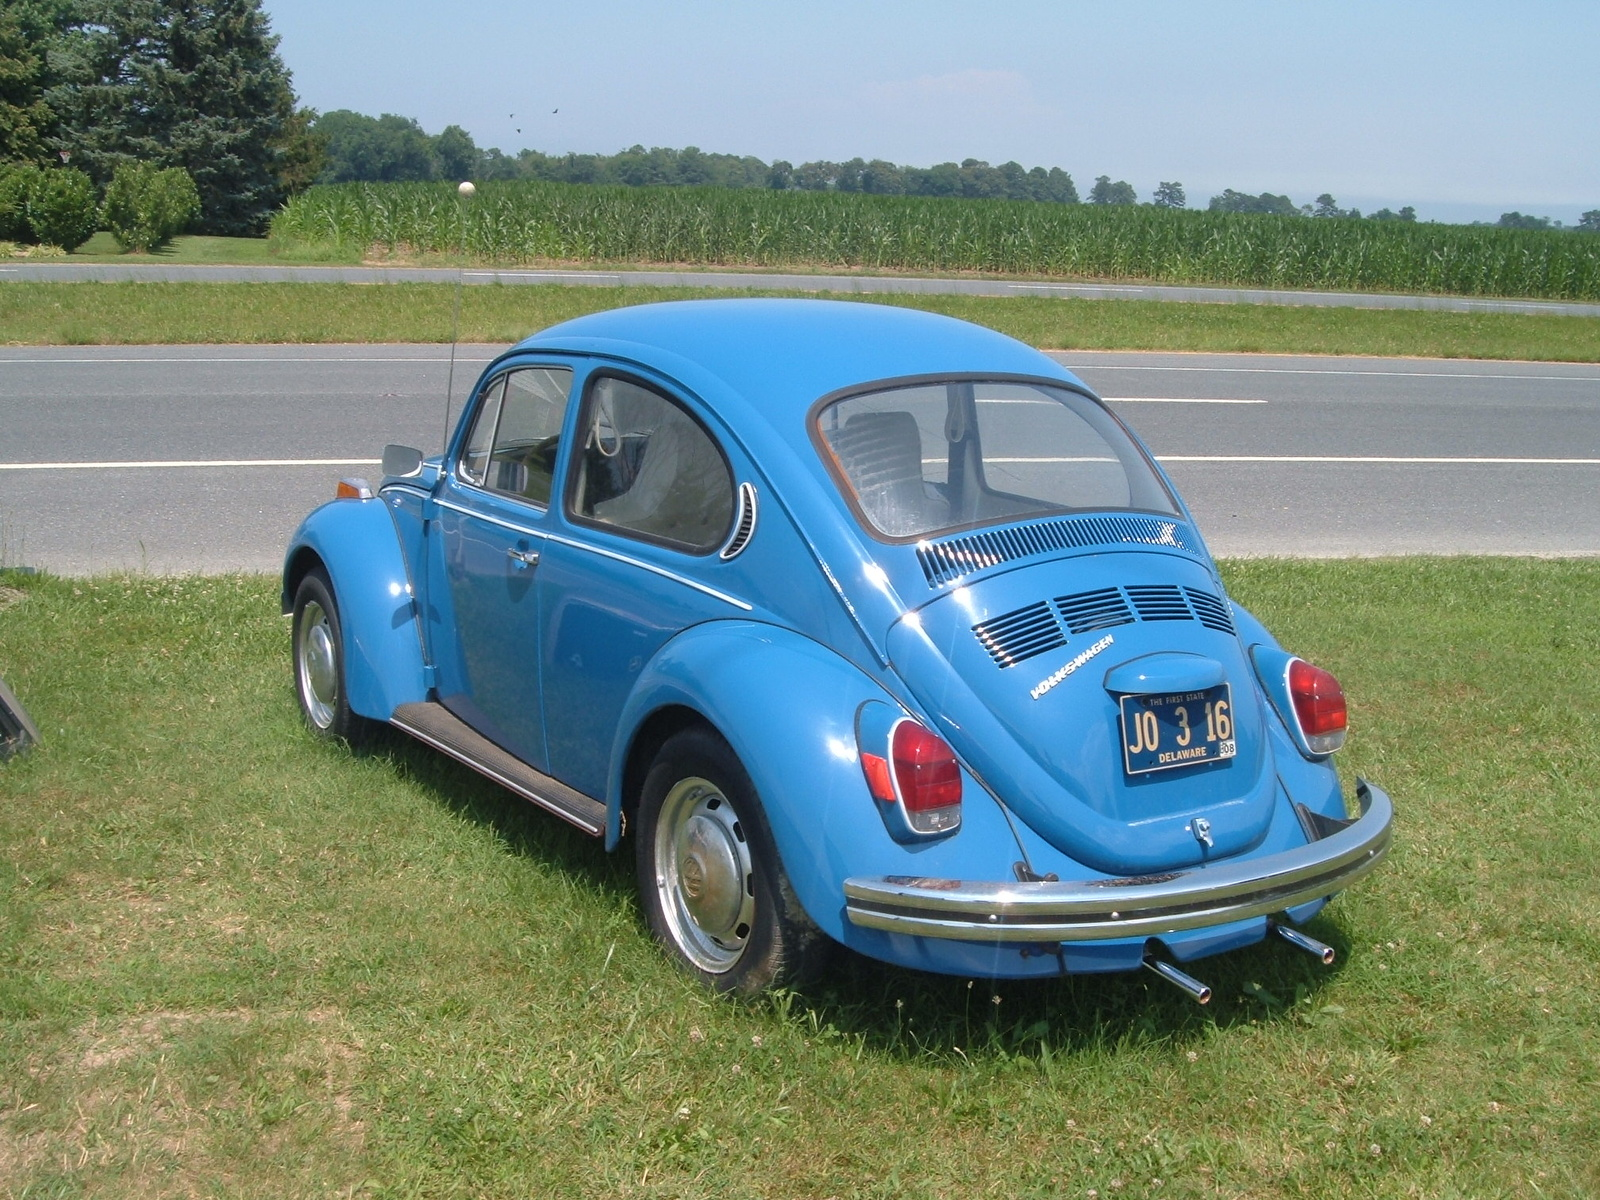 153911 furthermore Viewtopic likewise 2015 Vw Jetta Fuse Box Diagram furthermore La Purge Des Freins Facile as well My 1965 1200 A Vw Beetle Restoration. on 1974 super beetle interior